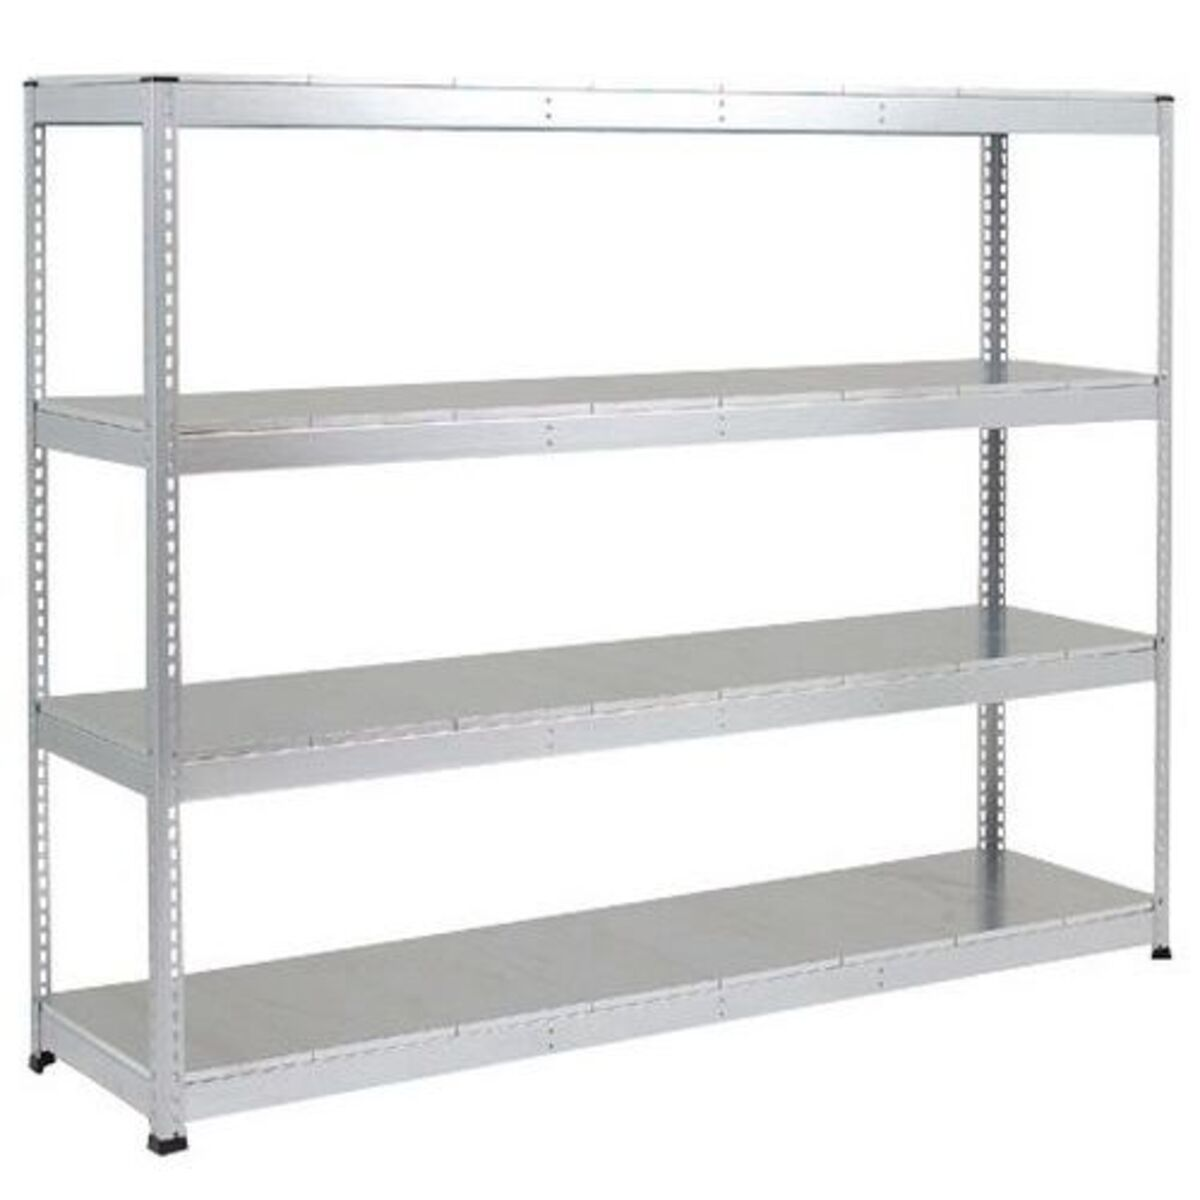 Rayonnage Rapid 1 4 tablettes metal 1980x1830x610 zingue